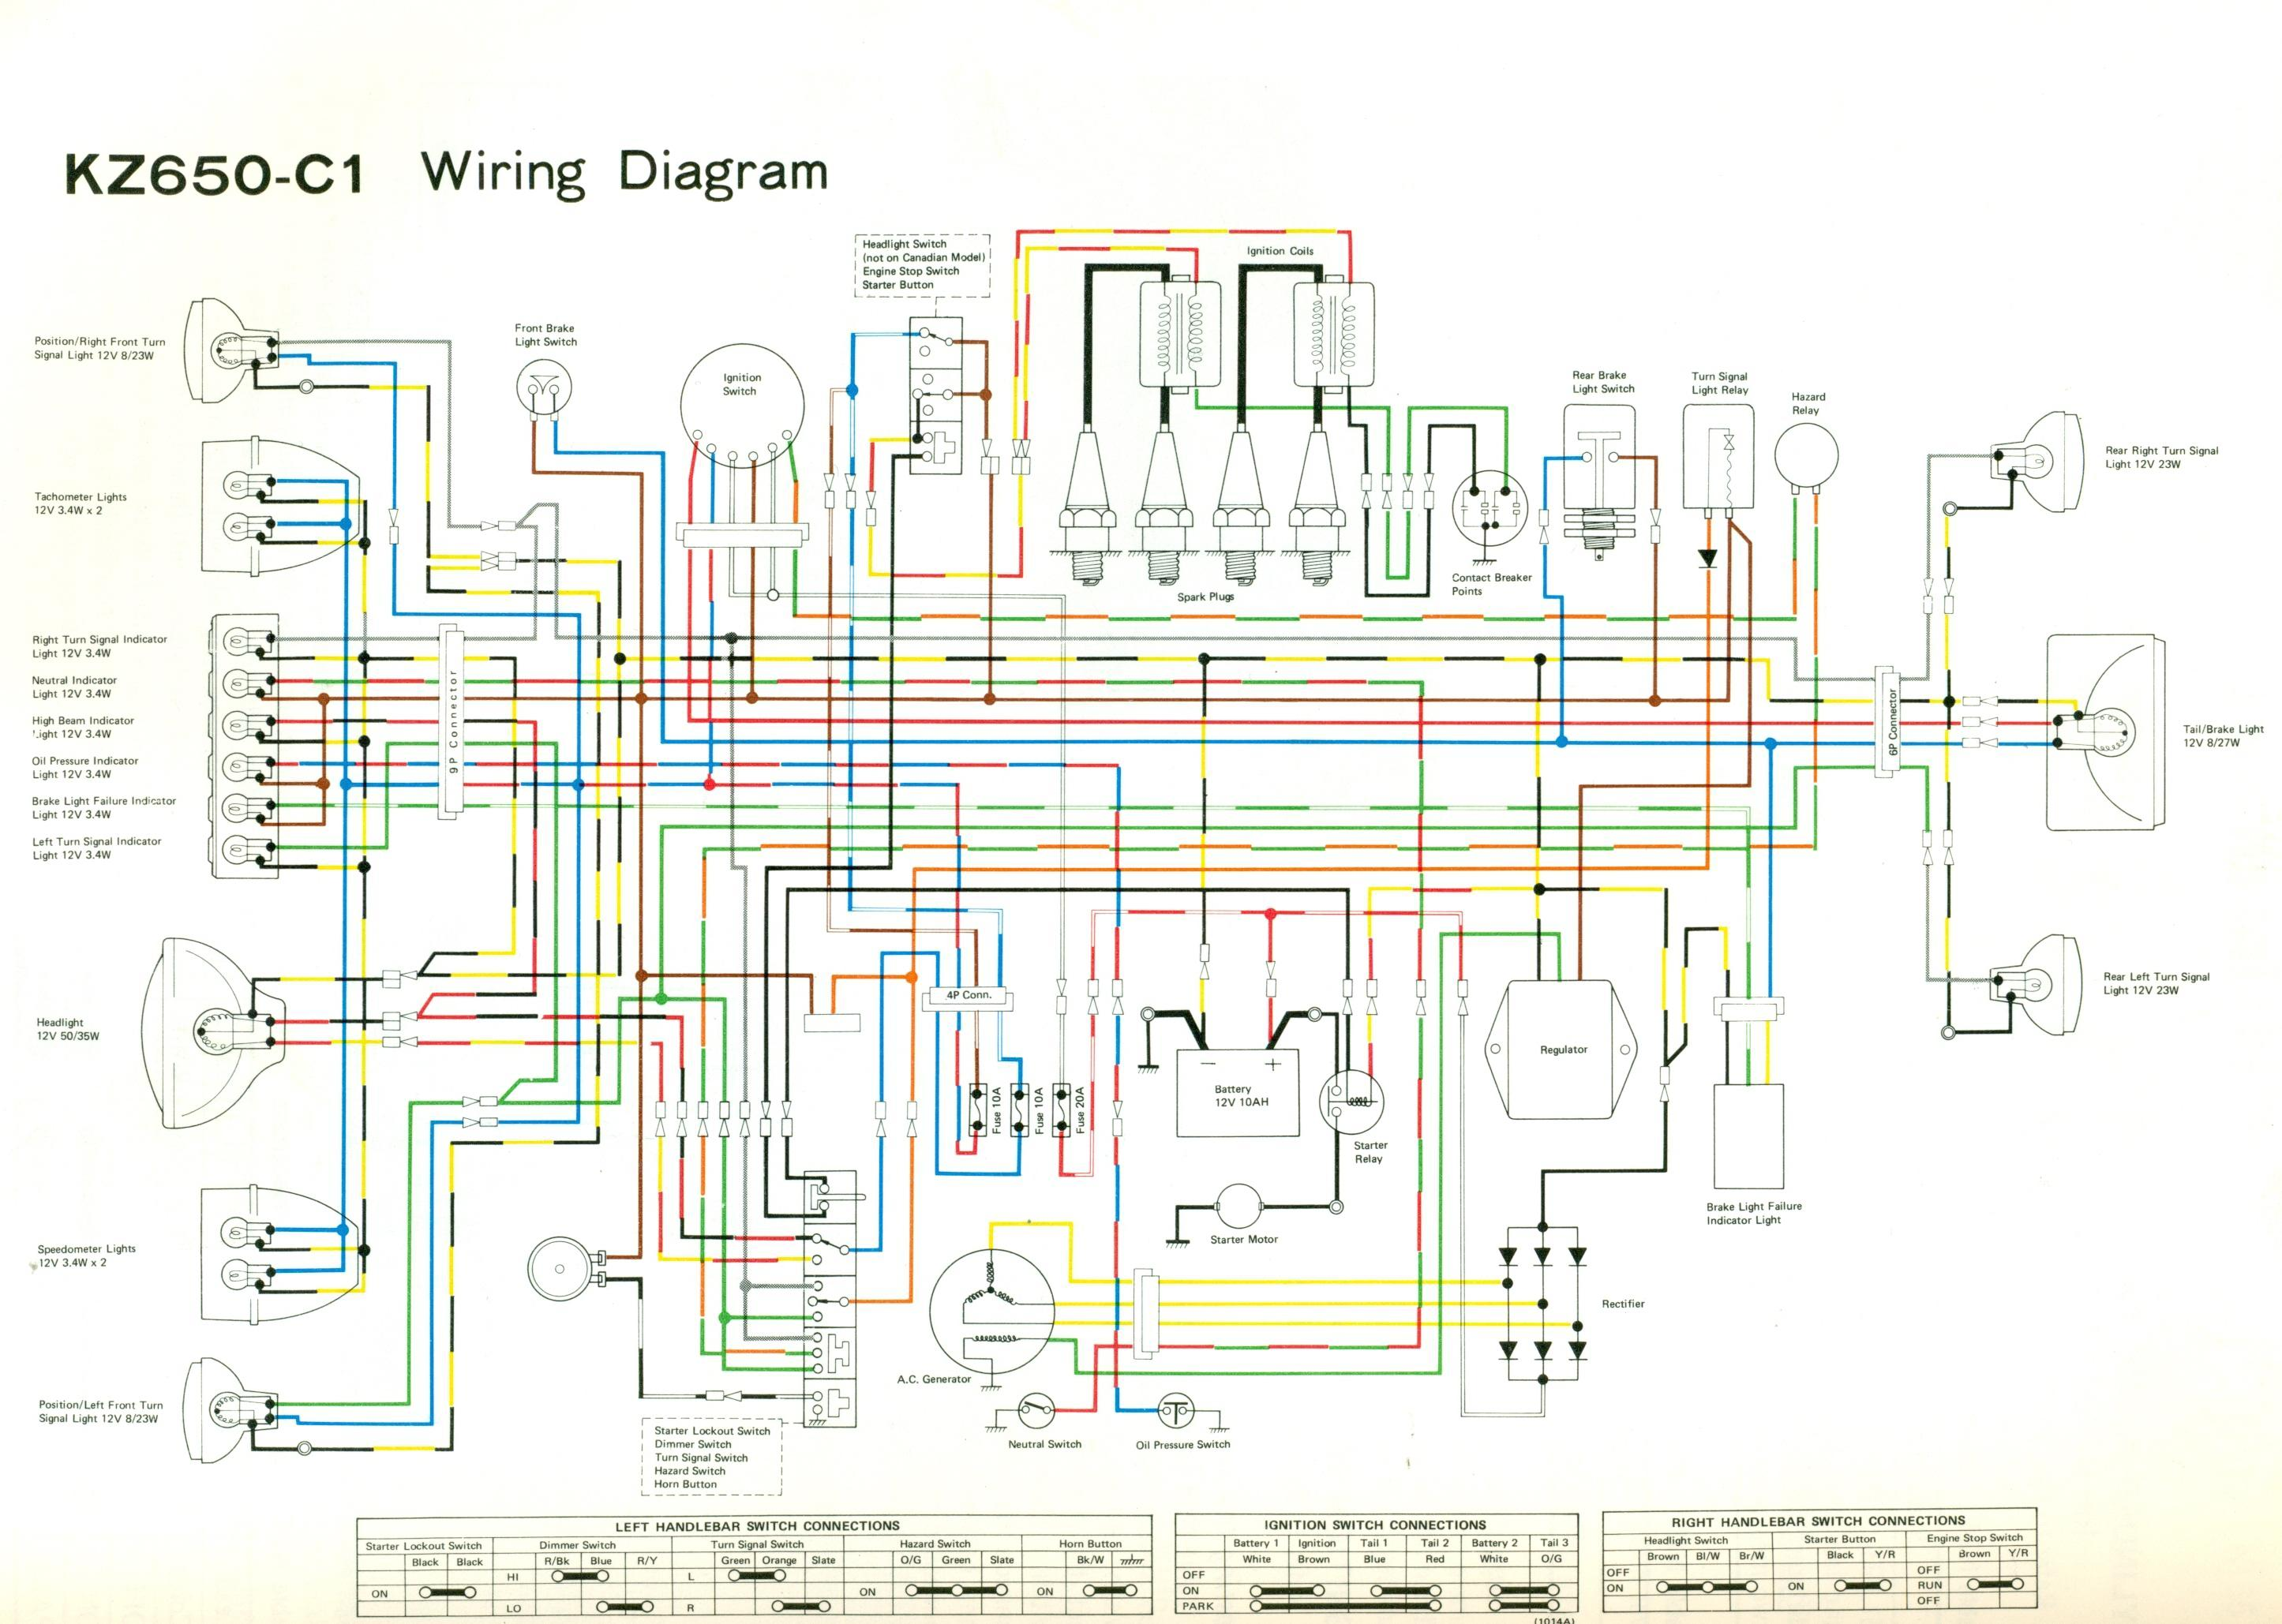 Wiring Diagrams Cycle Electric Generator Diagram Kz650 C